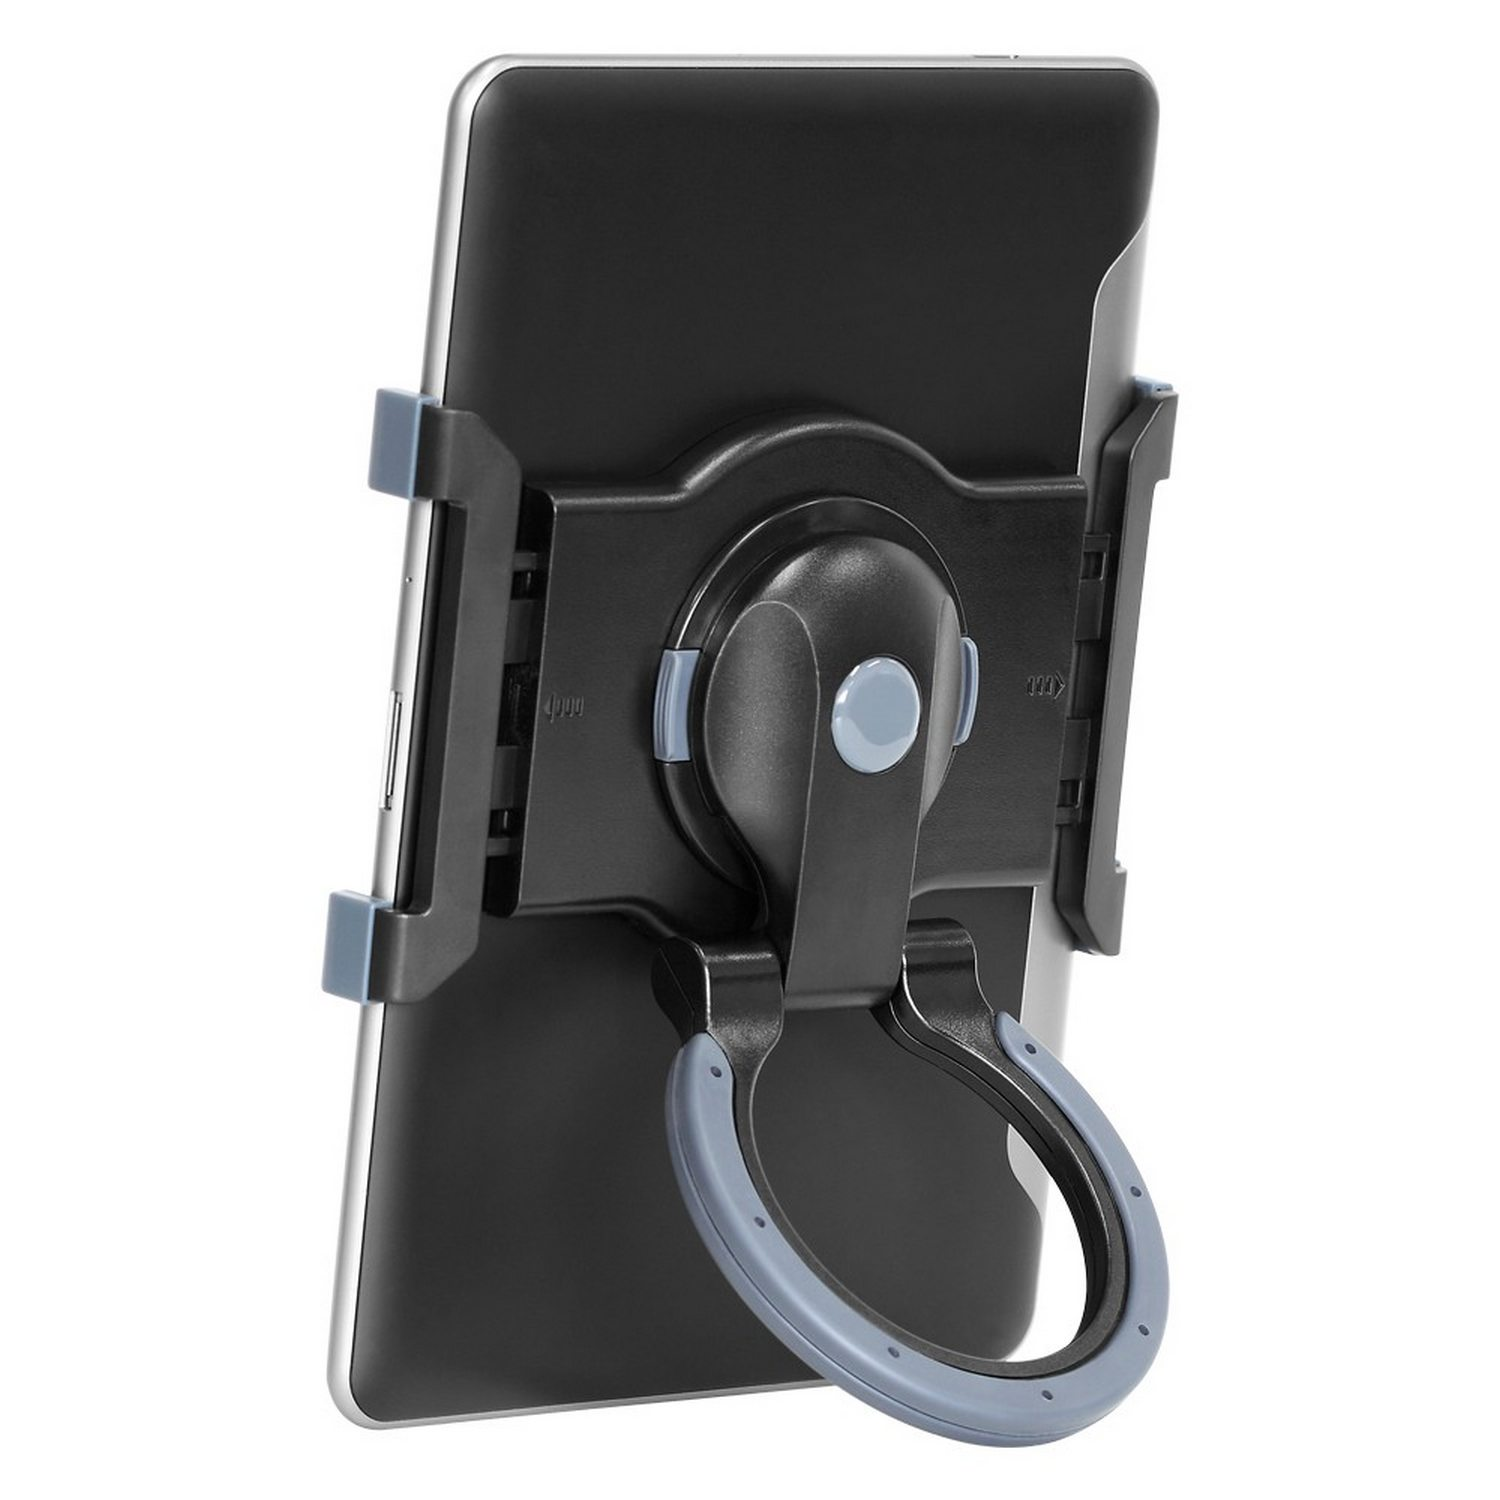 Portable universal tablet mount